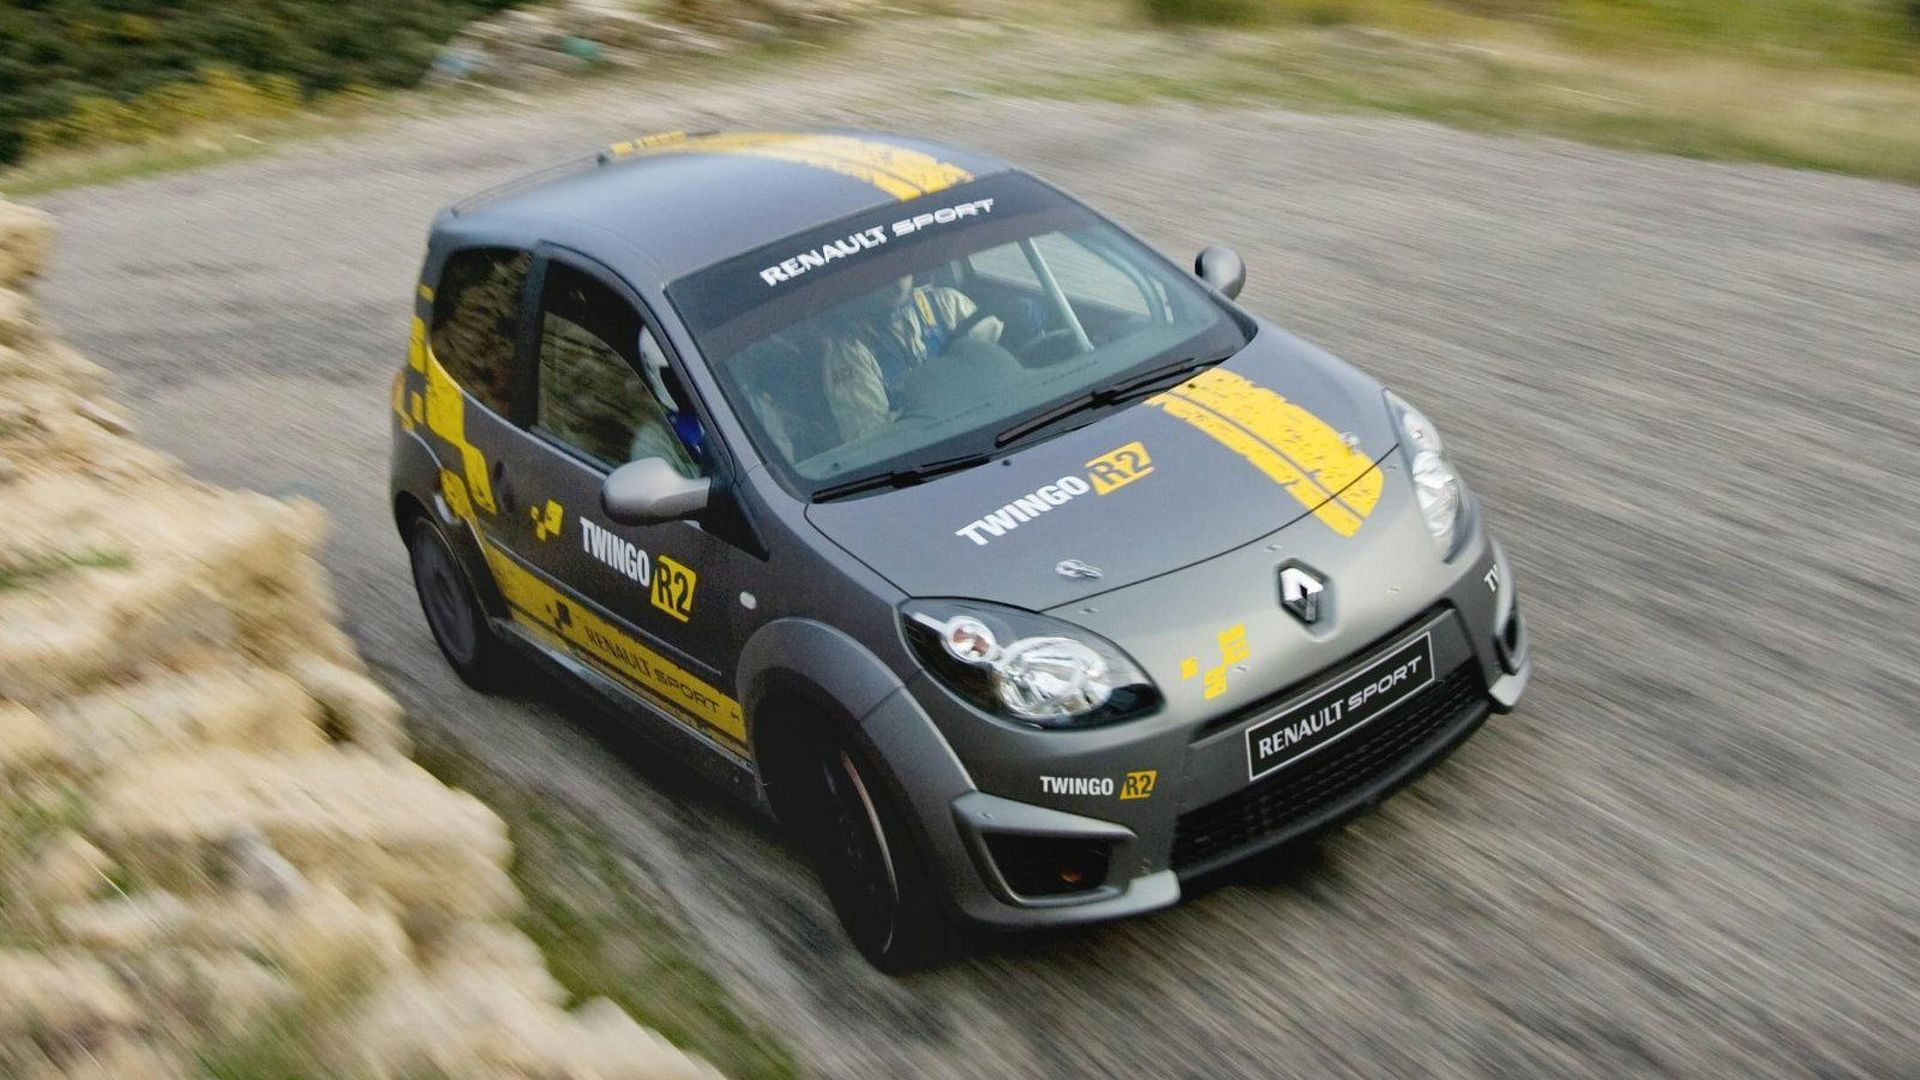 Renault Twingo RS Entry-Level Rally Cars Announced